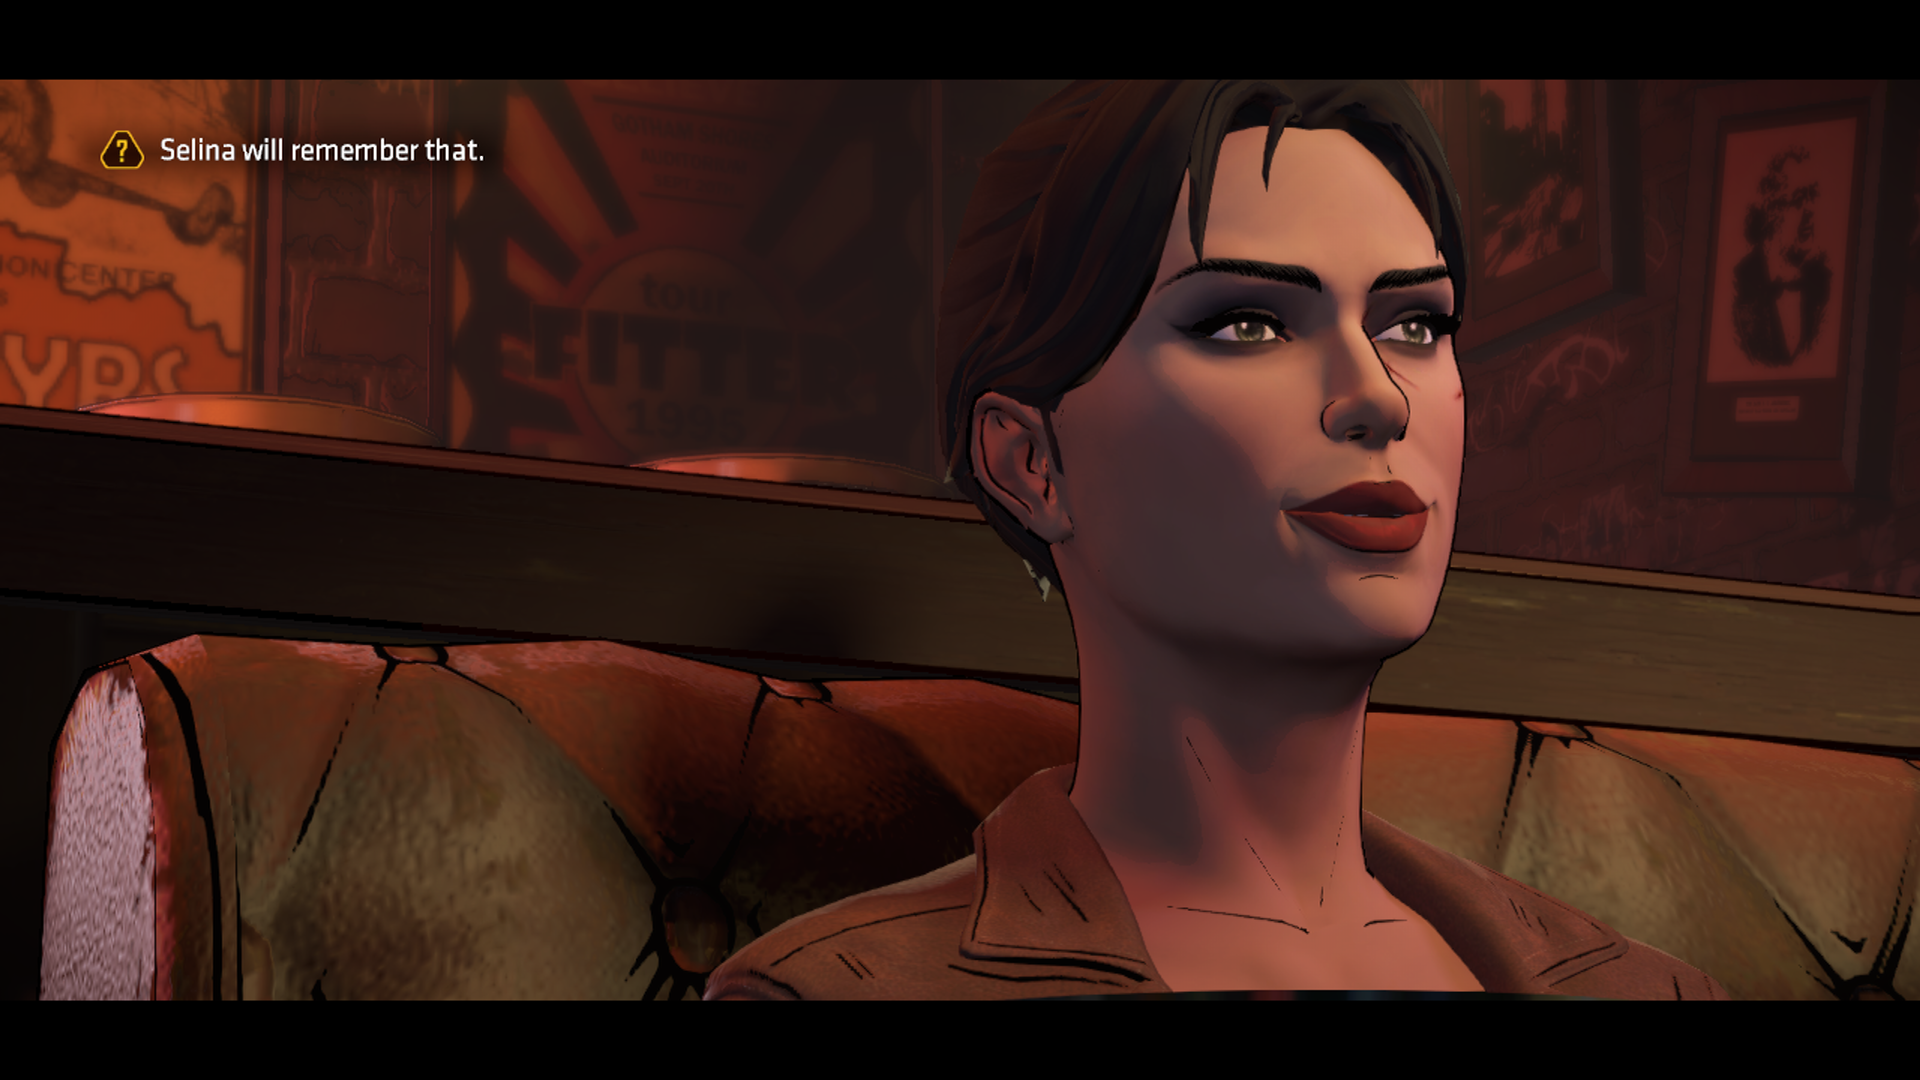 batman-the-telltale-series-episode-1-realm-of-shadows-18